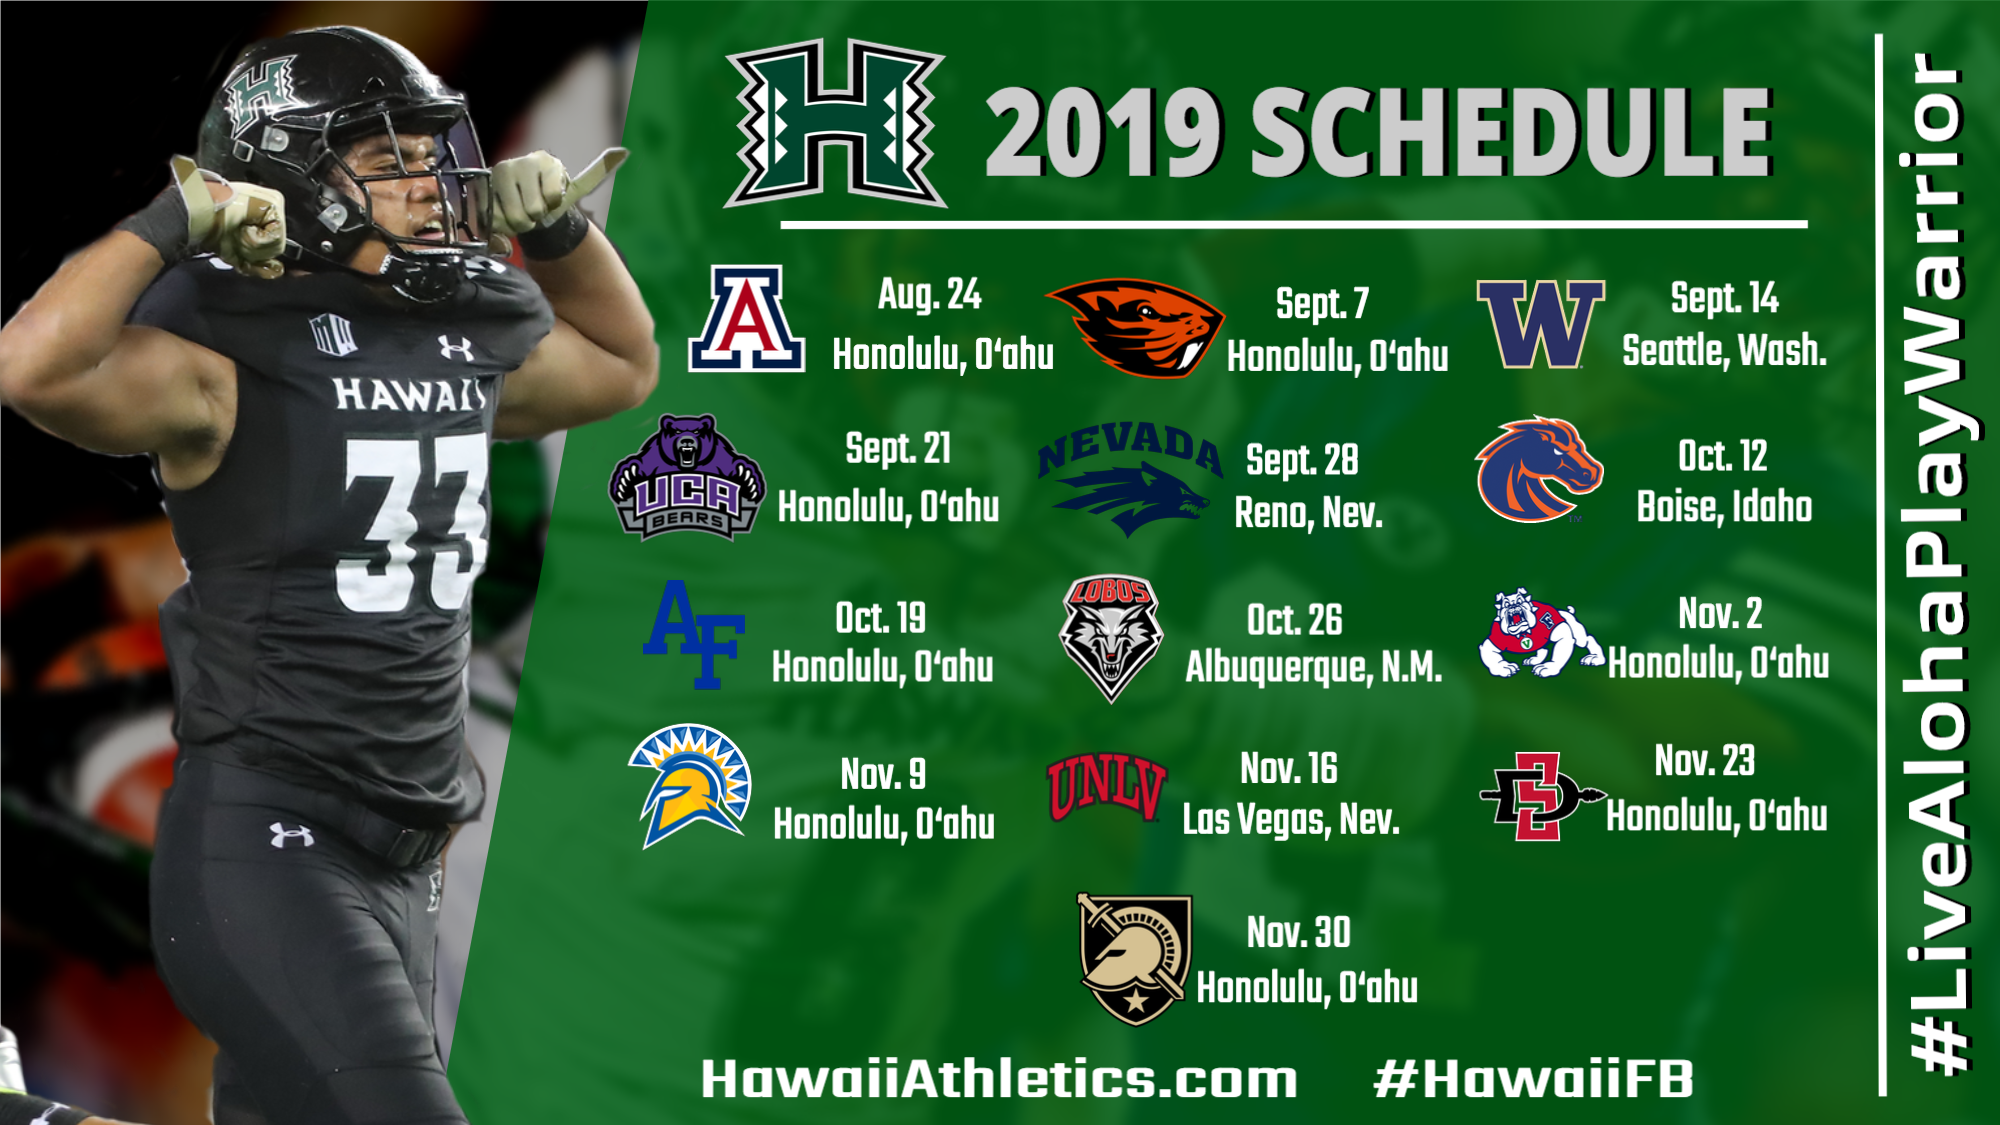 Nevada Football Schedule 2020 2019 Football Schedule Announced   University of Hawai'i at Manoa